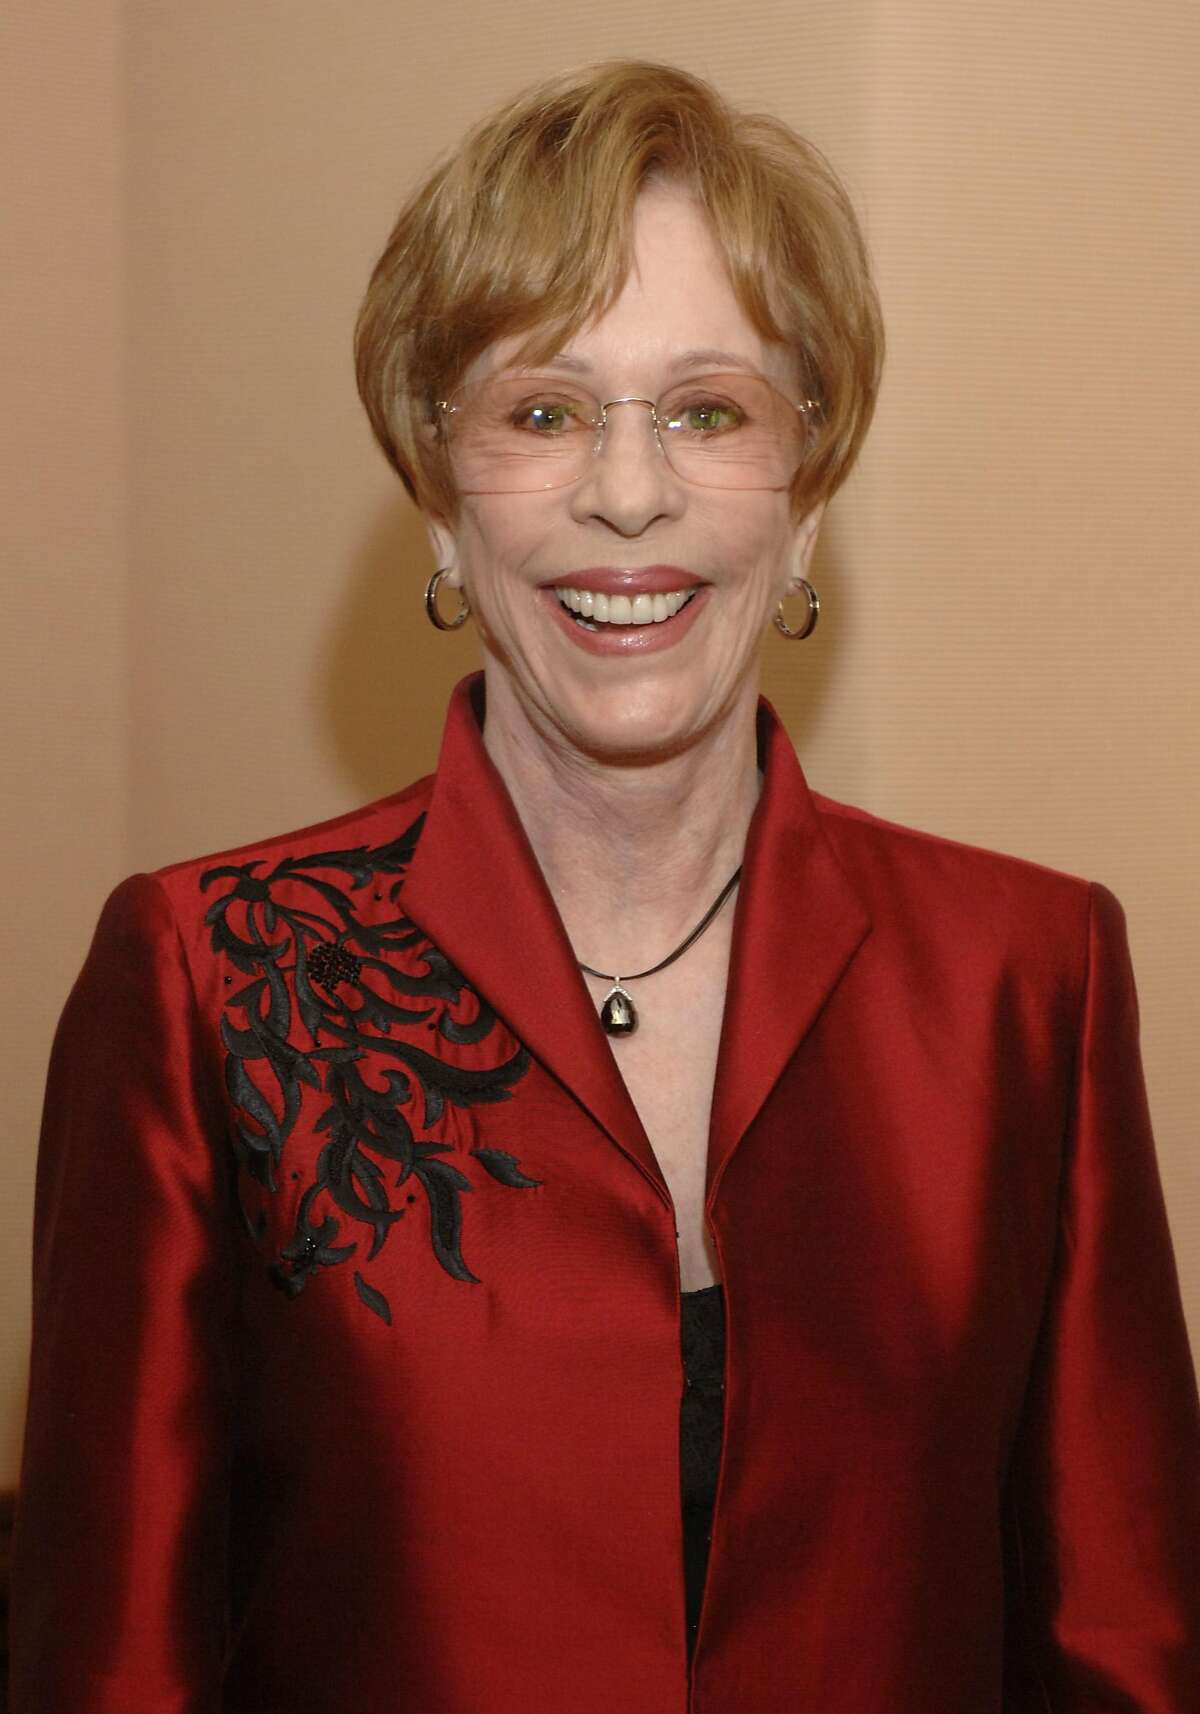 """Carol Burnett is shown in this July 23, 2006, file photo in Pasadena, Calif. Burnett has filed a $2 million copyright infringement lawsuit against 20th Century Fox, claiming her cleaning woman character was portrayed on the animated series """"Family Guy."""" The U.S. District Court lawsuit, which was filed Thursday,March 15, 2007, said the Fox show didn't have the 73-year-old comedian's permission to include her cleaning woman character, Charwoman, in an April 2006 episode. (AP Photo/Phil McCarten, file)"""